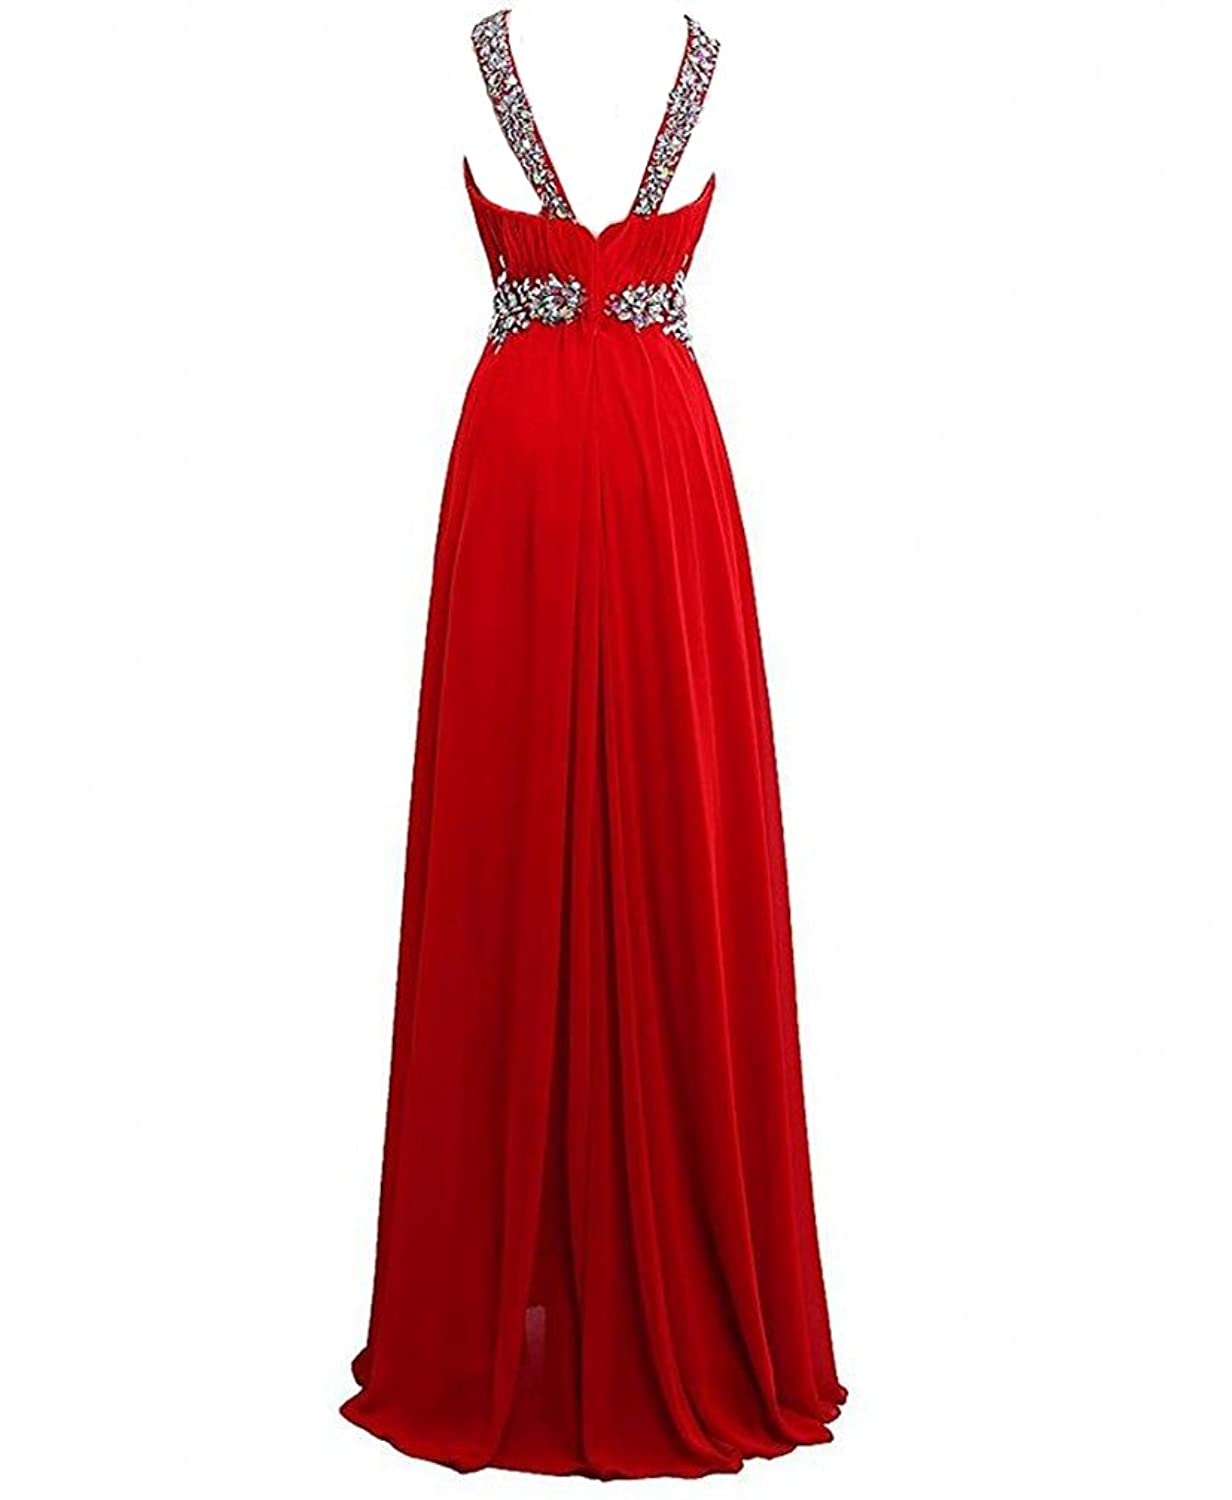 Himoda womens long scoop beaded prom gowns chiffon bridesmaid himoda womens long scoop beaded prom gowns chiffon bridesmaid dresses h019 at amazon womens clothing store ombrellifo Choice Image